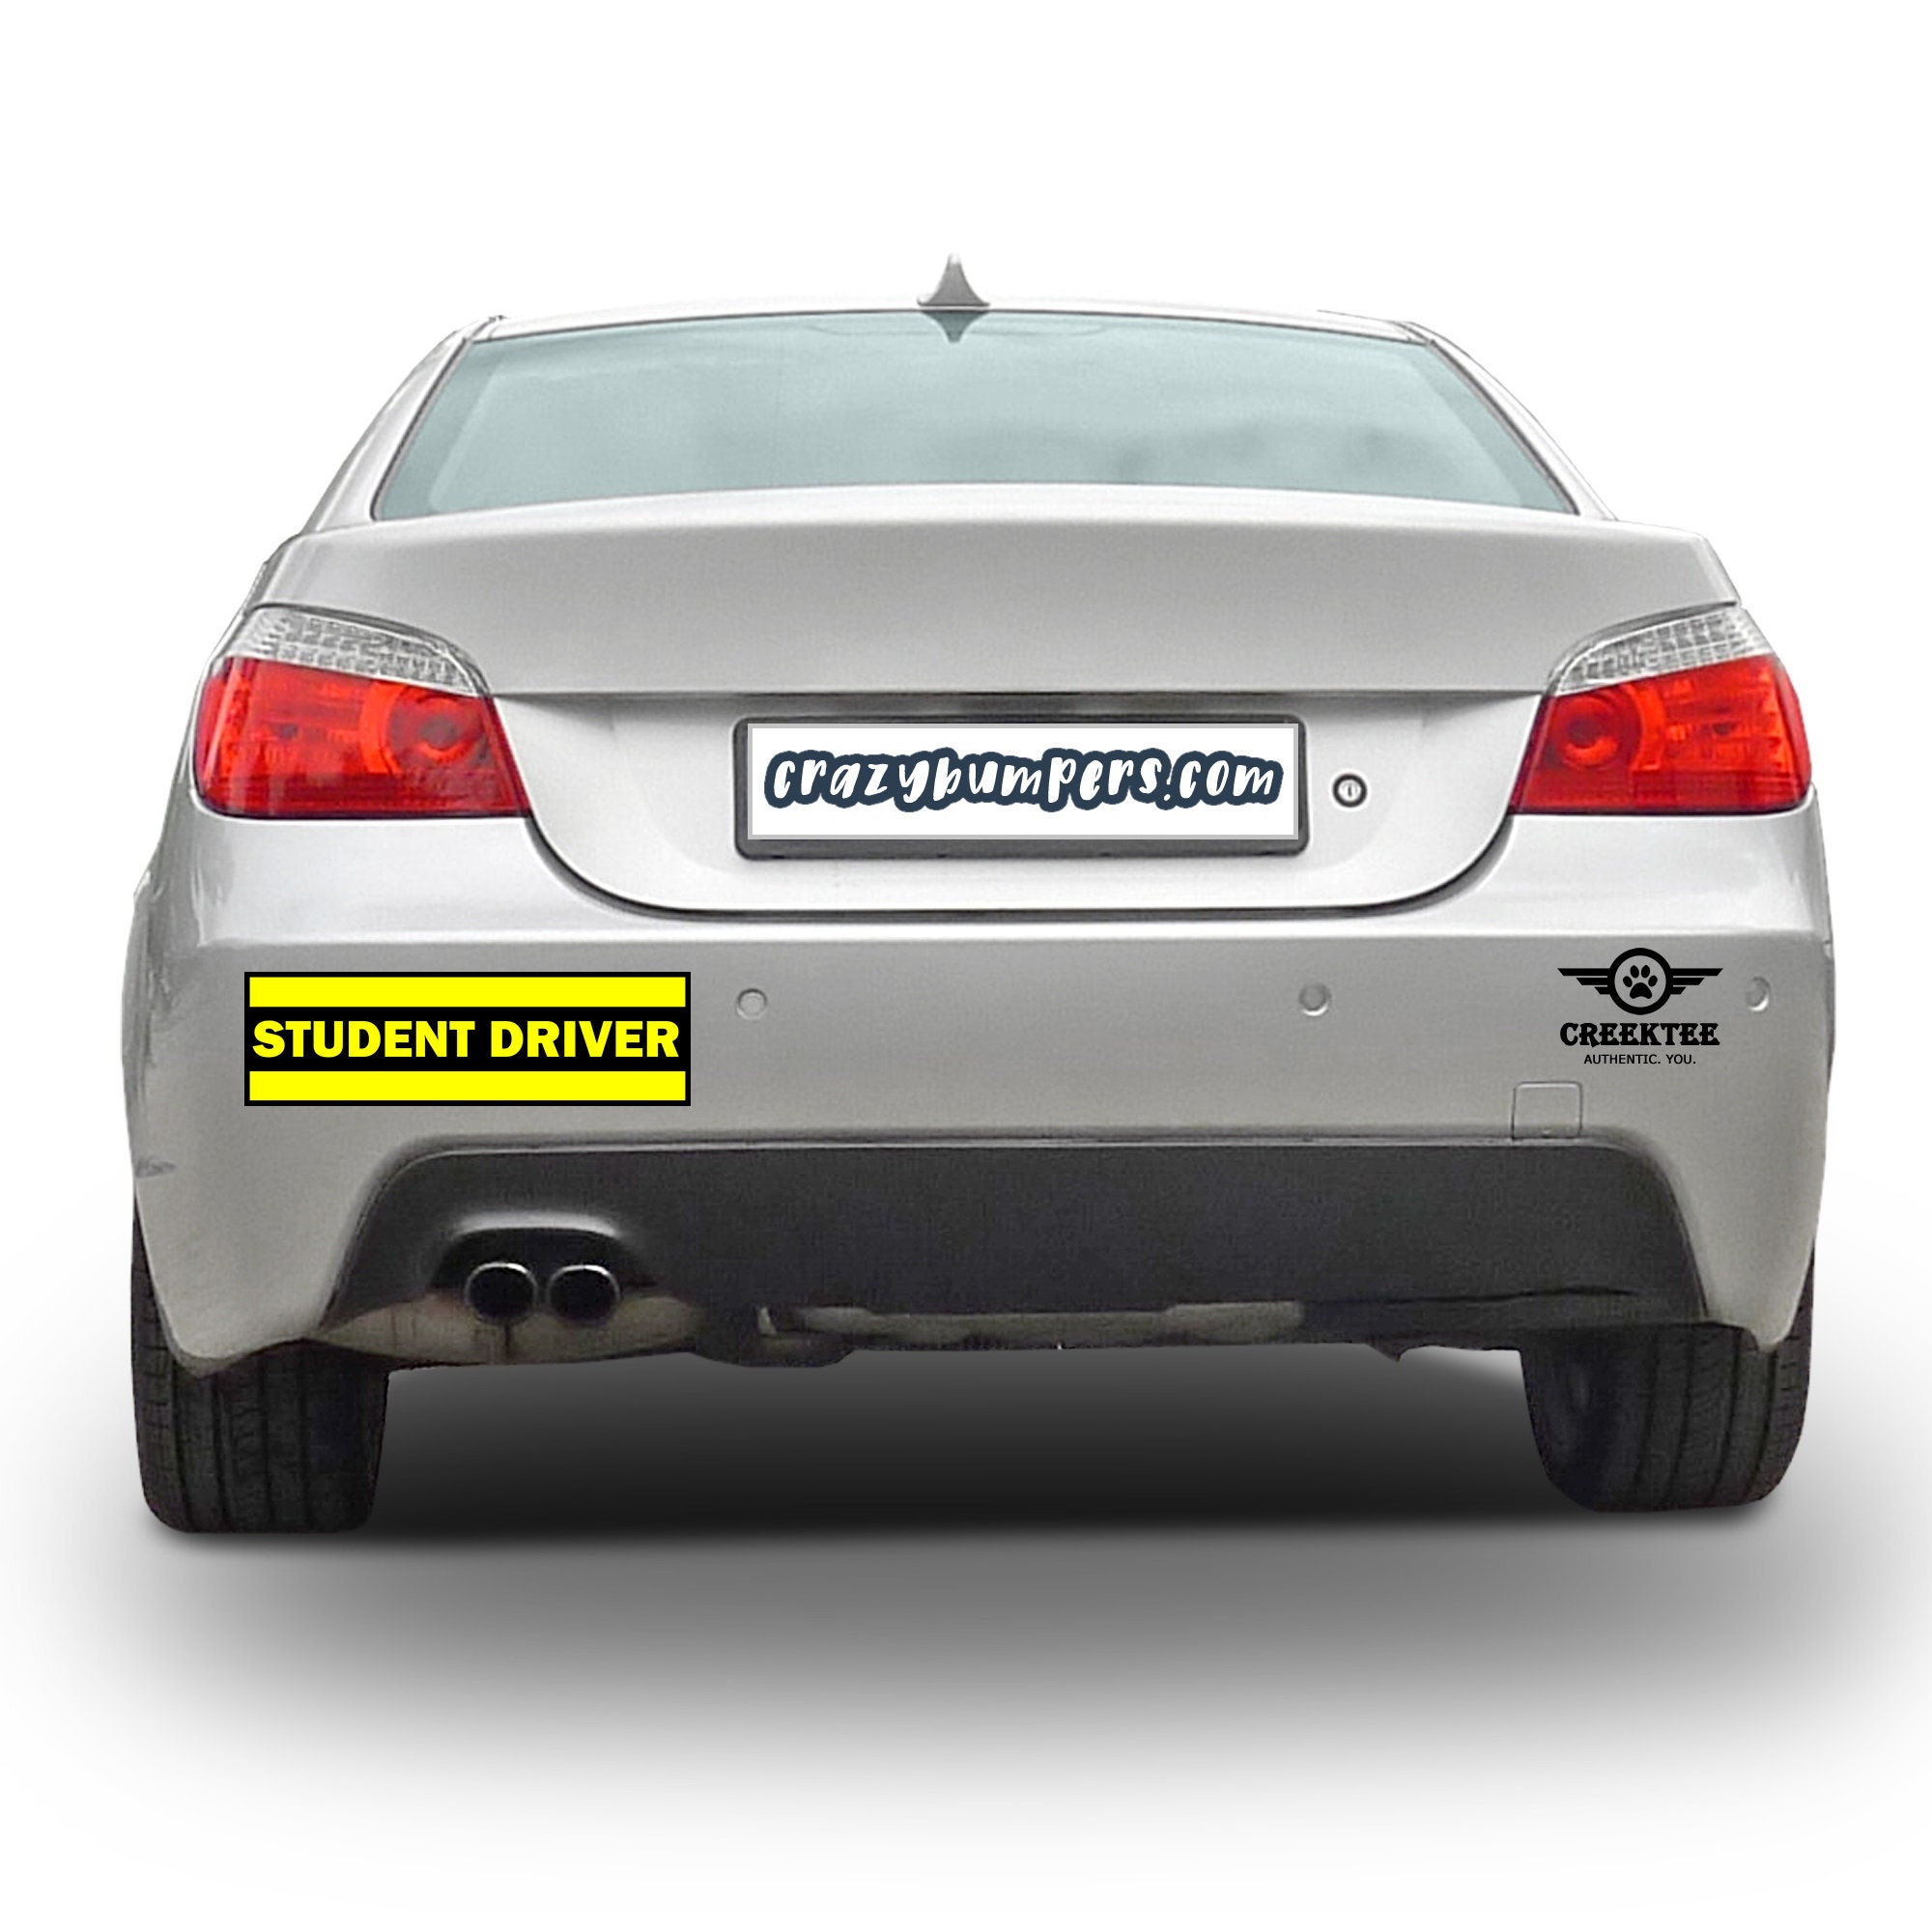 CAD$7.99 - STUDENT DRIVER YELLOW 10 x 3 Bumper Sticker or Magnetic Bumper Sticker Available